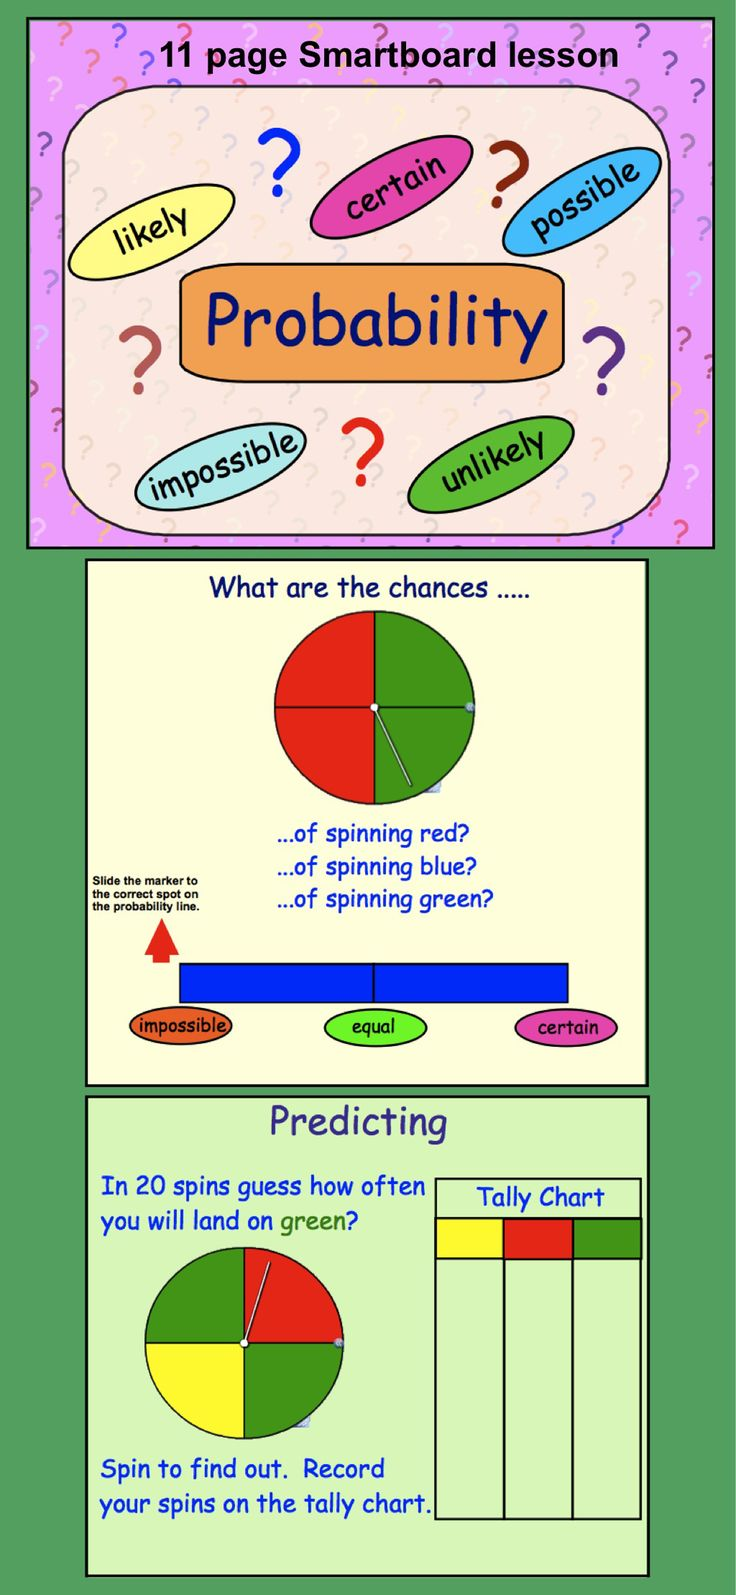 Teach probability the interactive way with this Smartboard lesson.